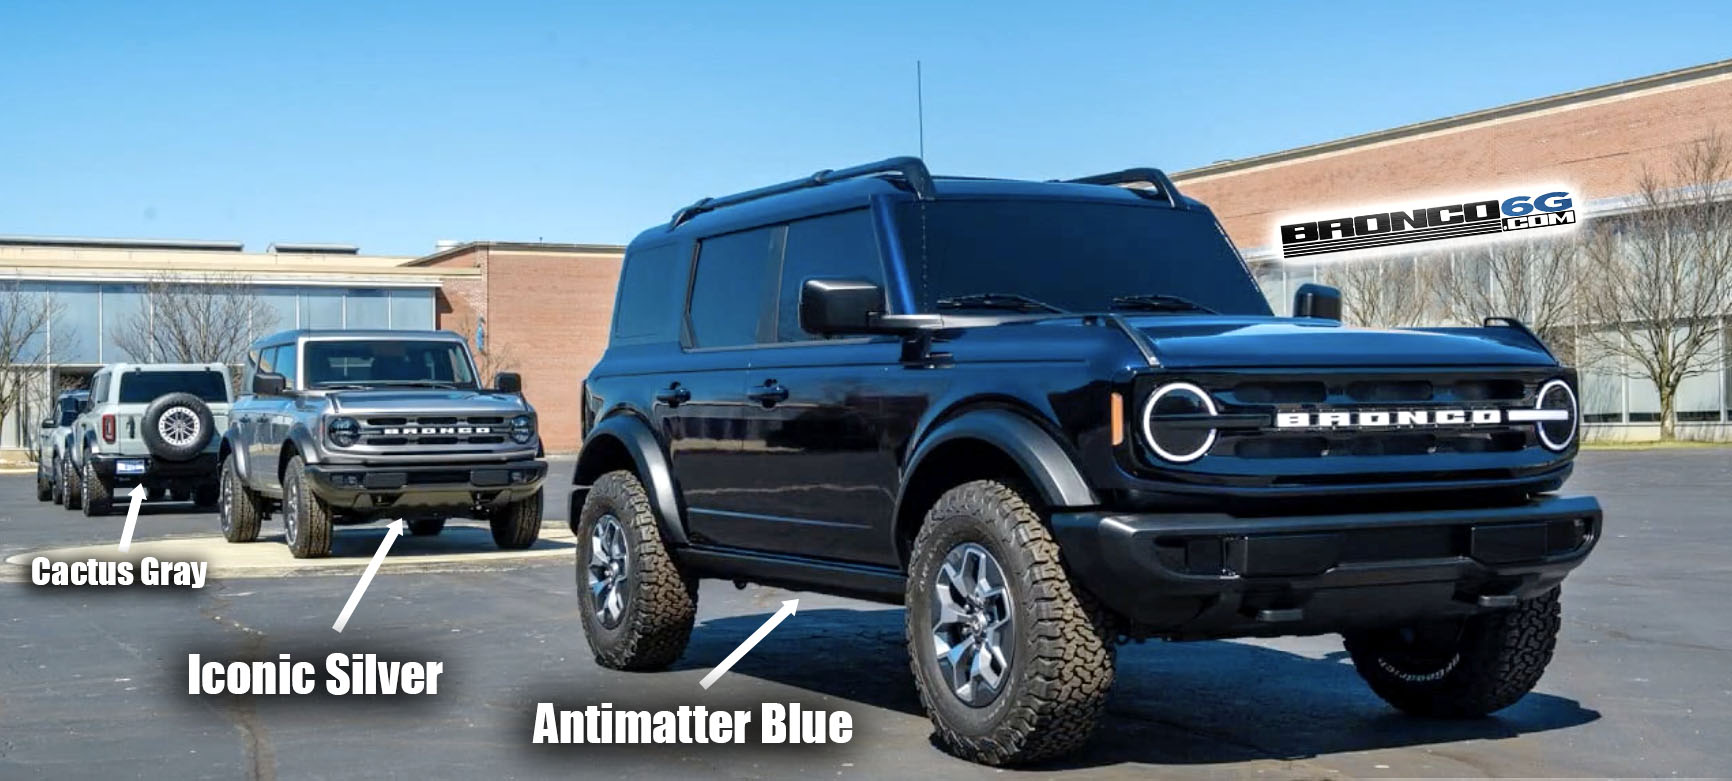 2021 Ford Bronco Antimatter Blue Iconic Silver Cactus Gray 2-door Bronco.jpg